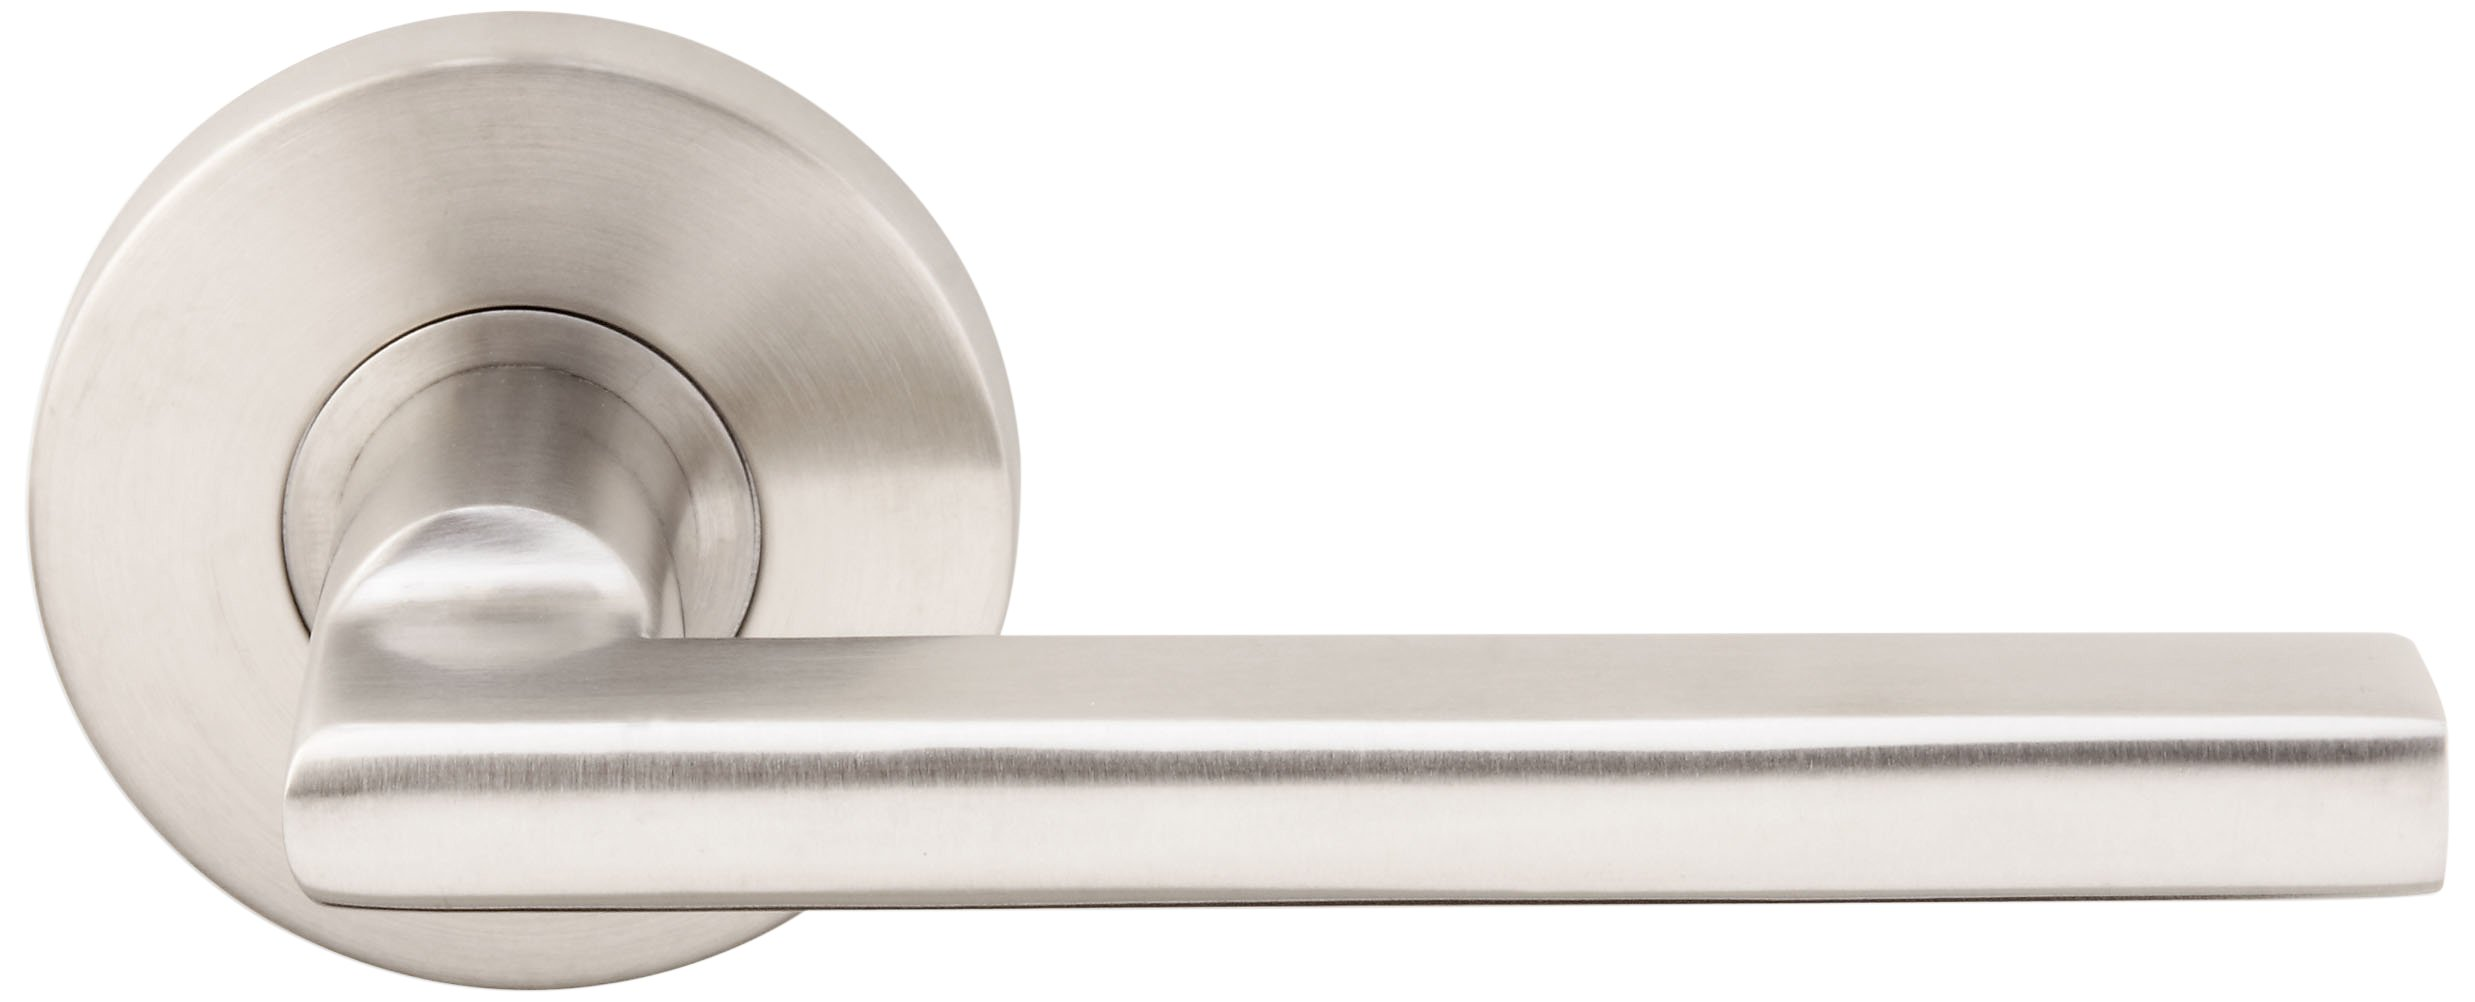 INOX RA243L62-32D Rosette Tubular Privacy Set With Sunrise Lever & Backset, 2-3/8'', Satin Stainless Steel